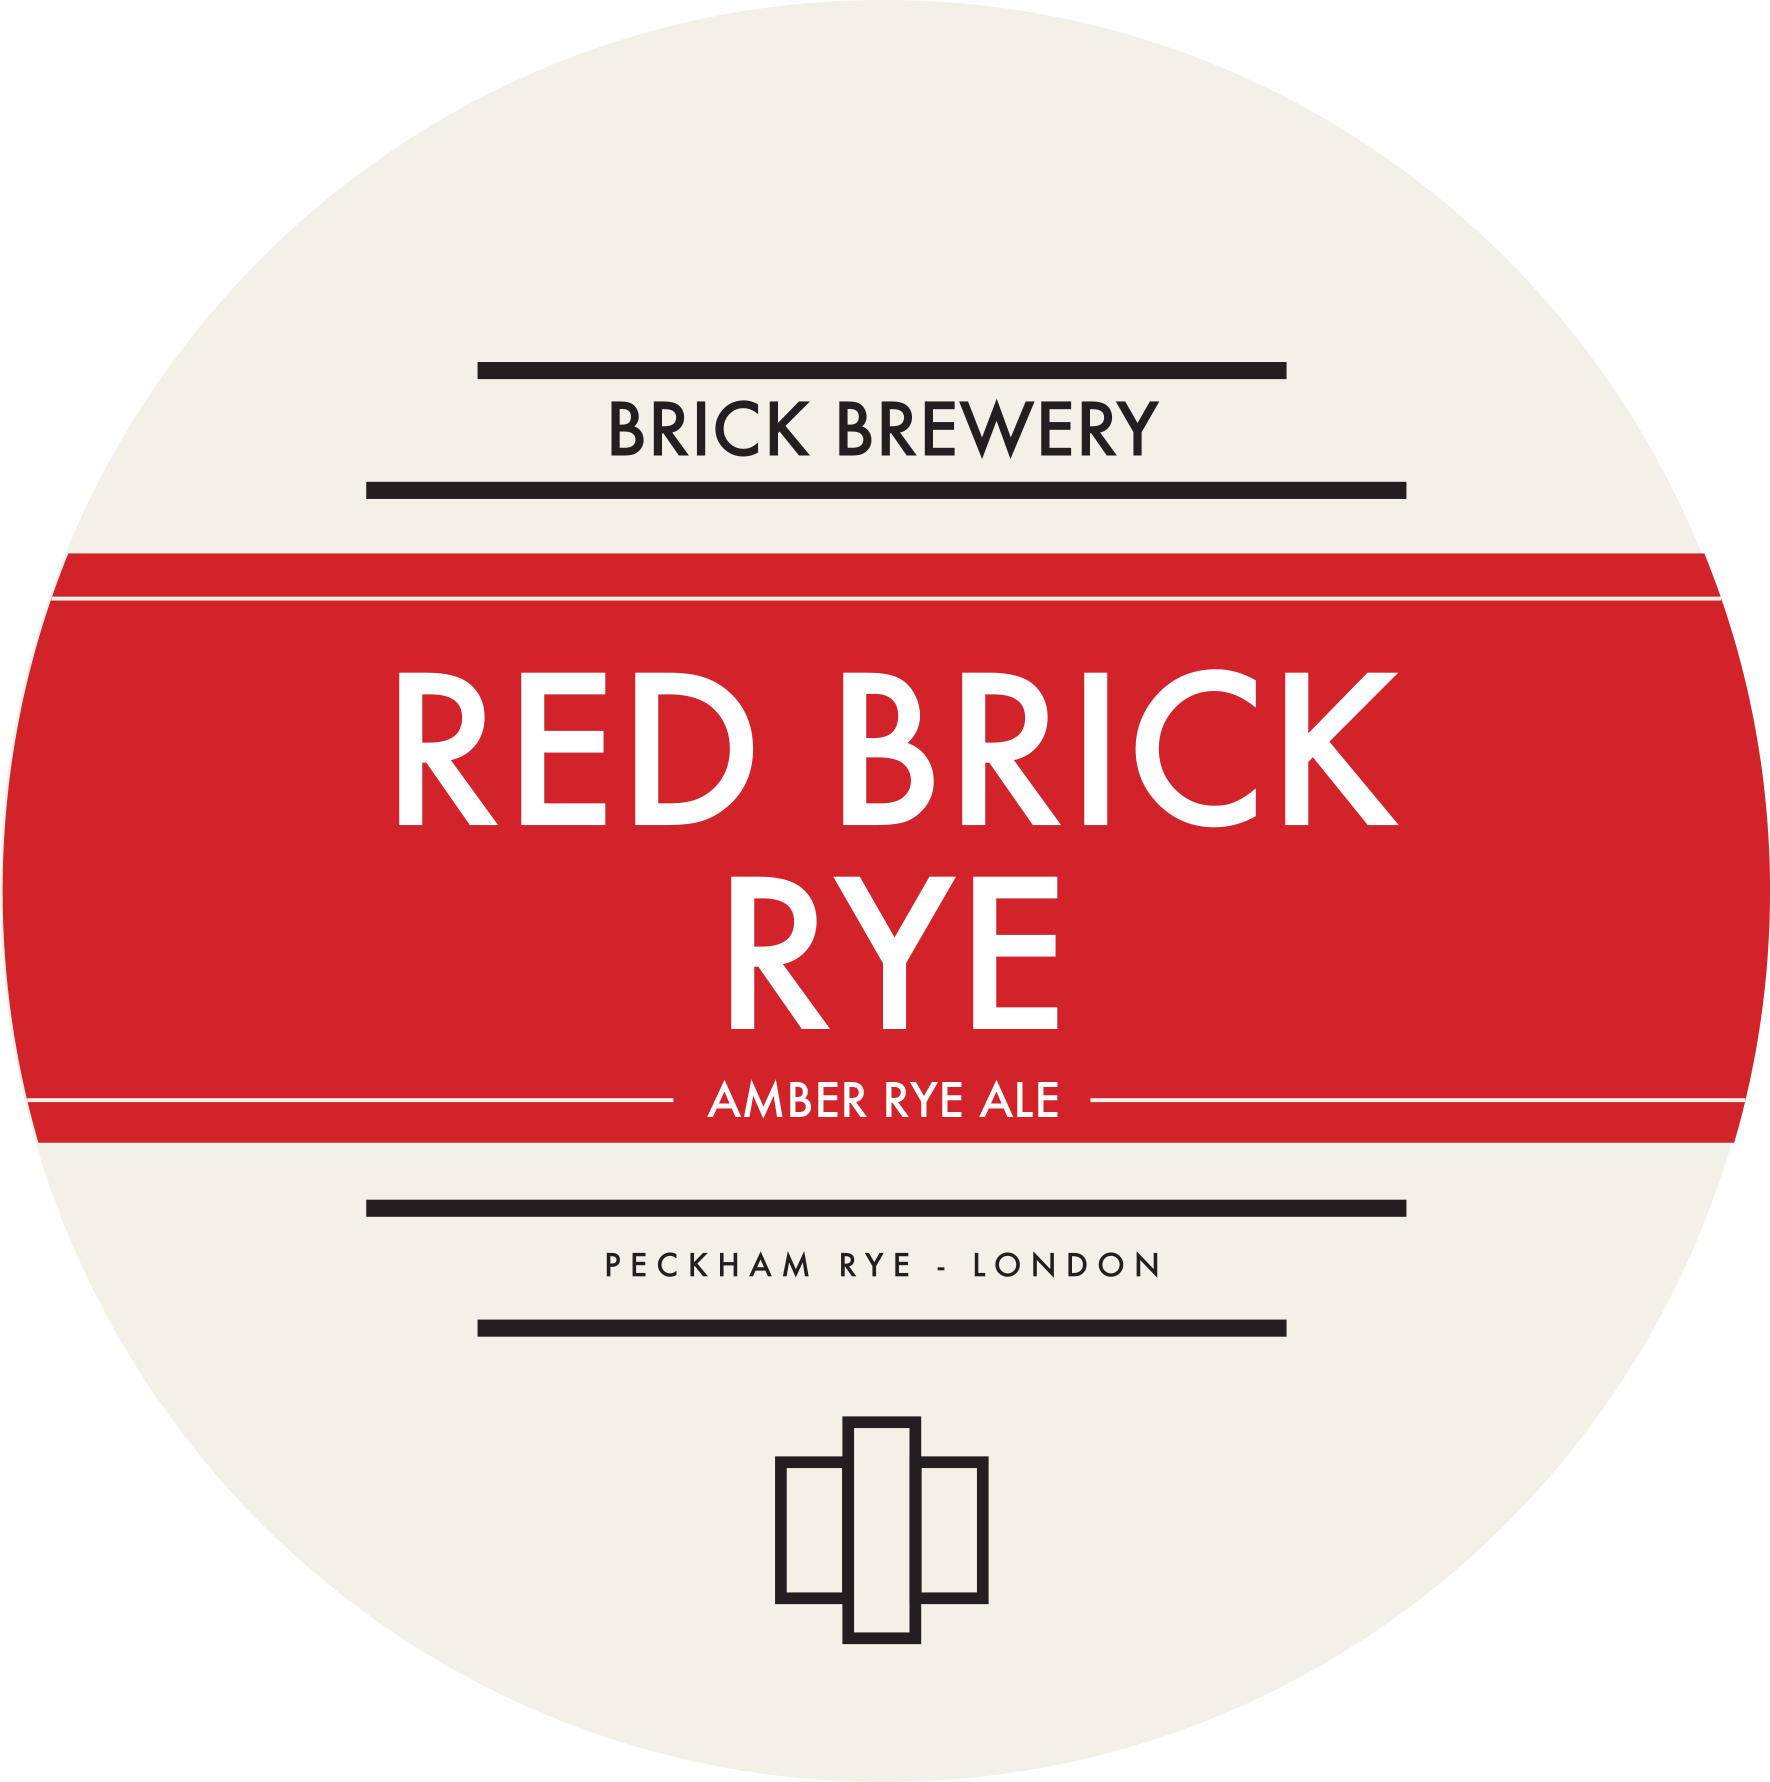 Brick Brewery's Red Brick Rye Beer Logo